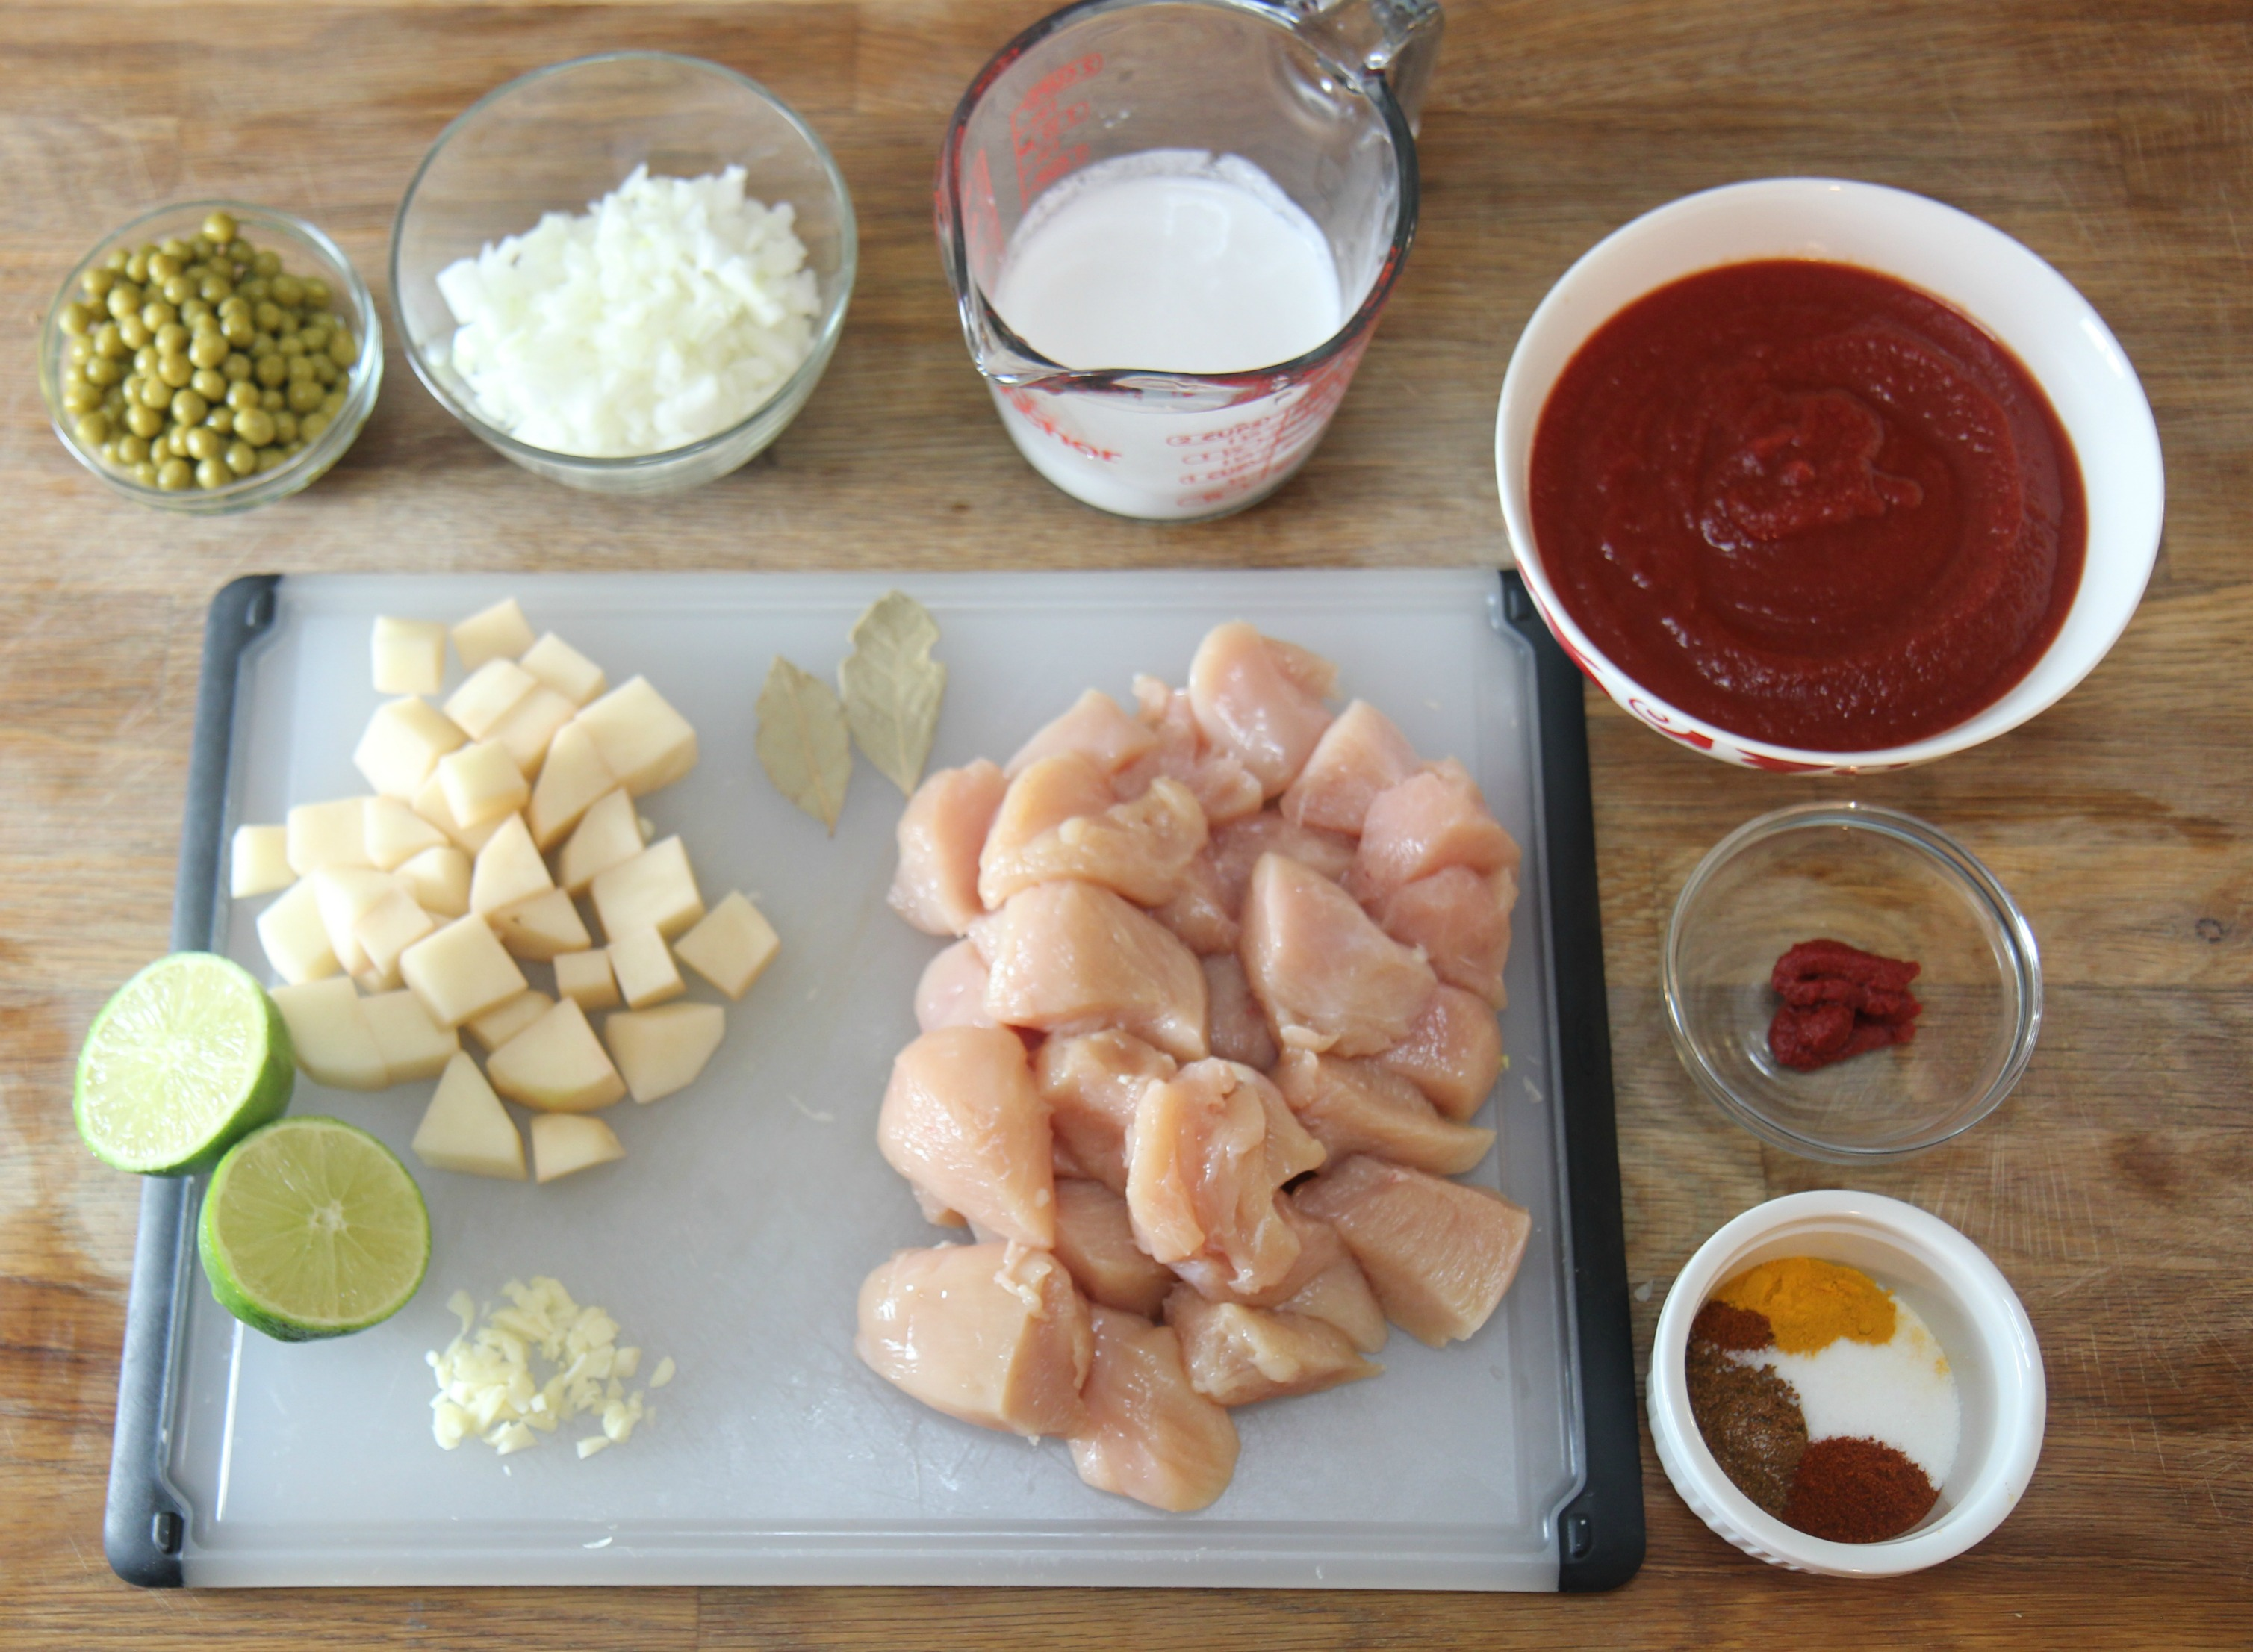 Ingredients needed for this easy coconut chicken curry recipe